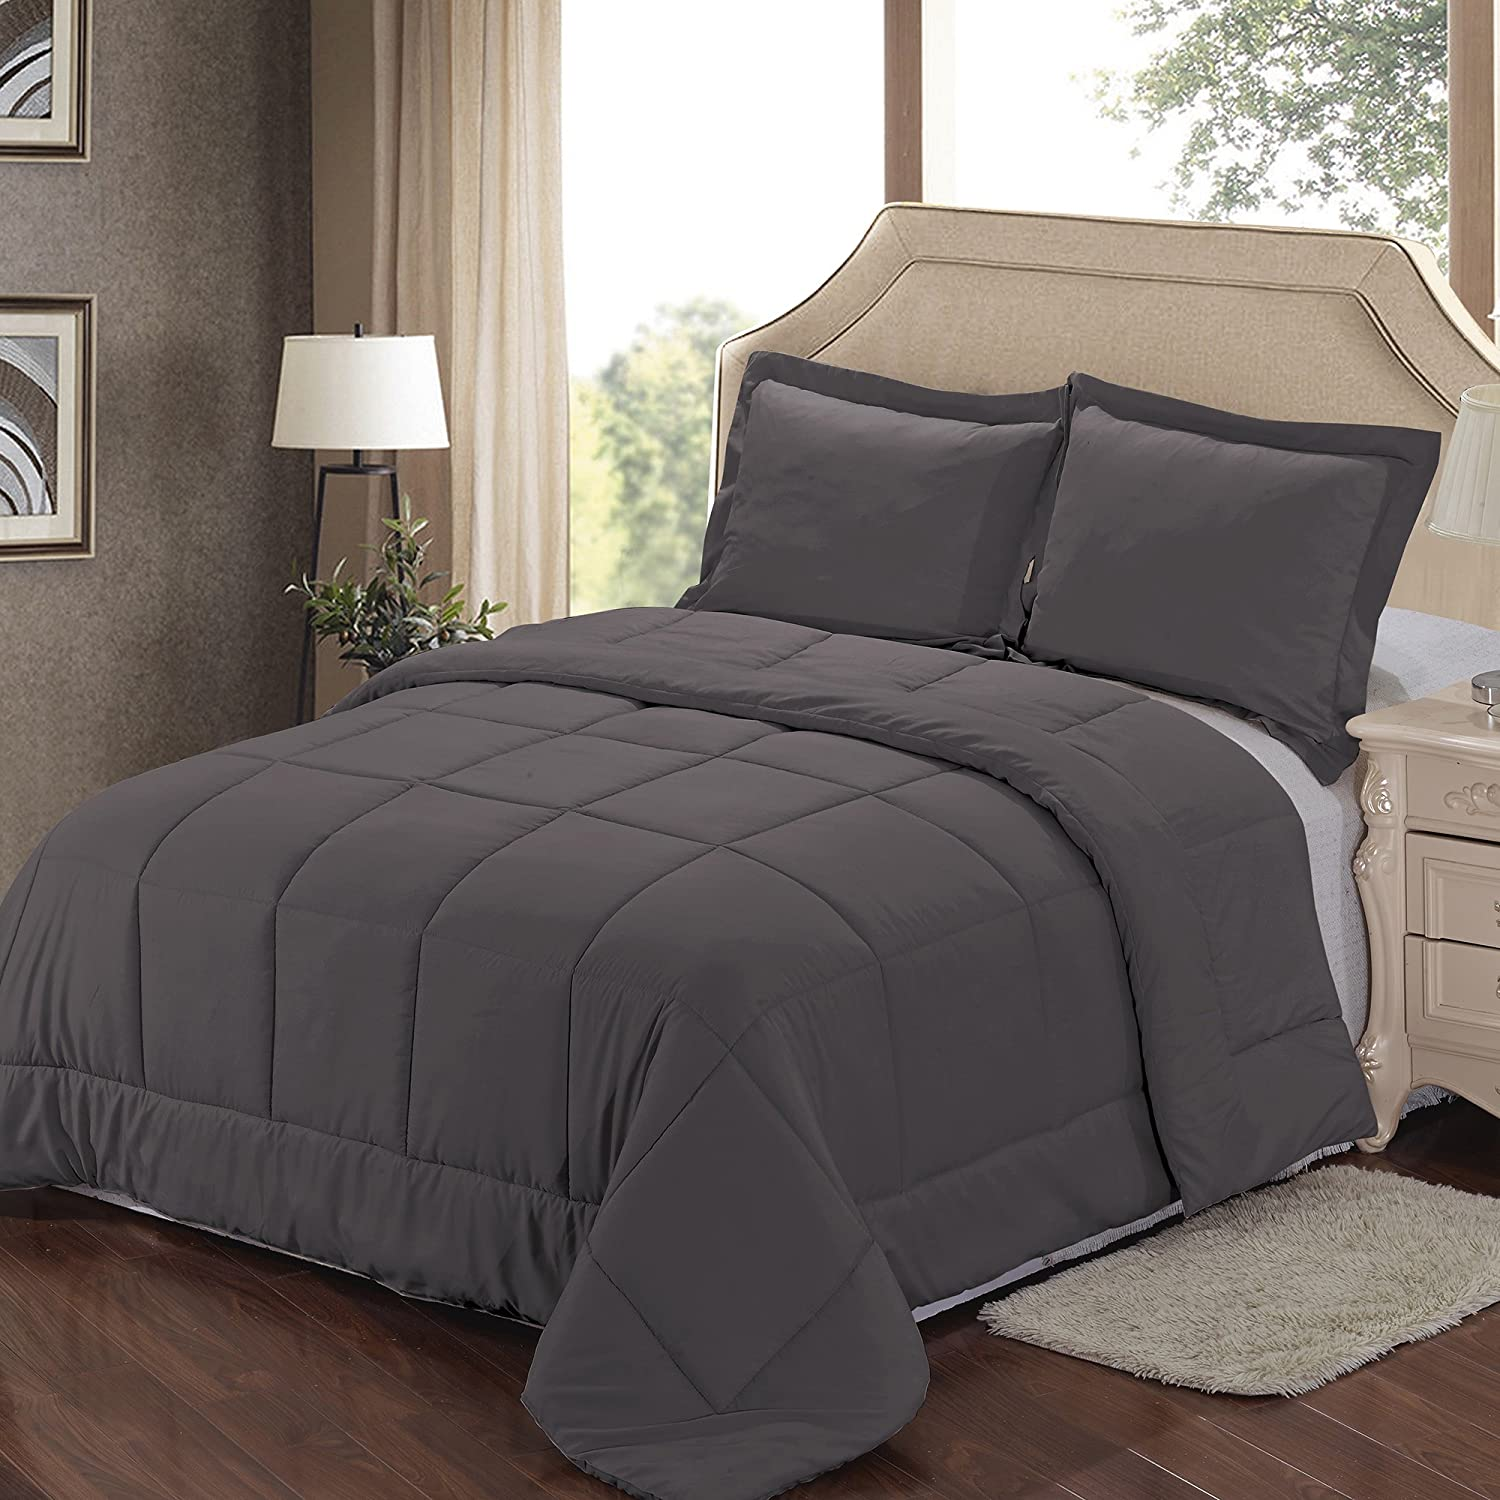 chic sets park comforter bedding paisley textiles place warm and home